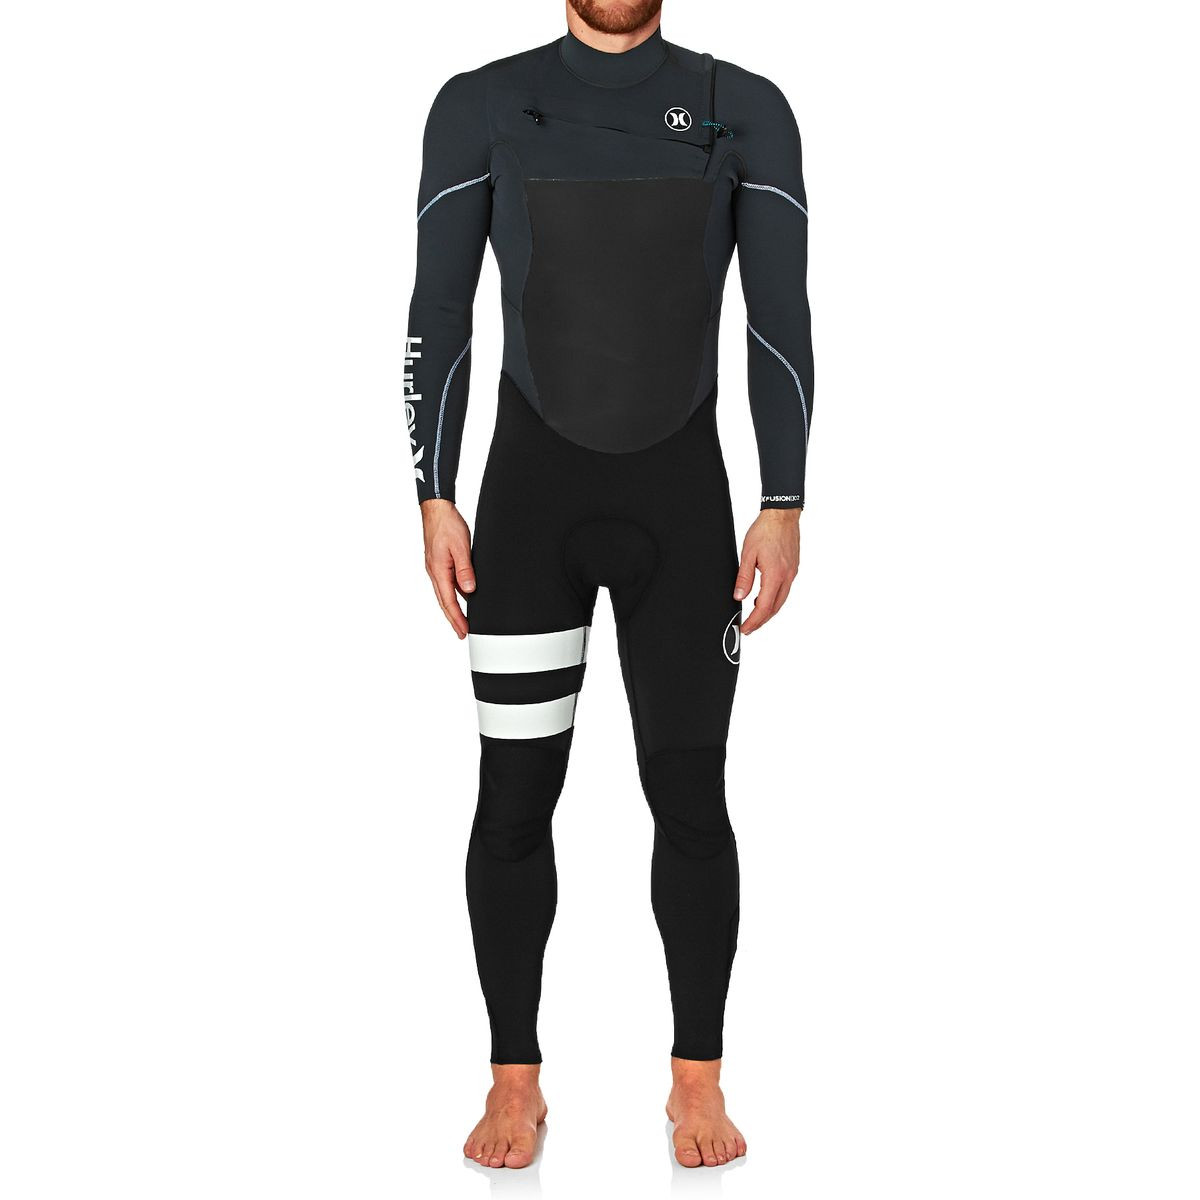 Hurley Fusion 3/2mm 2017 Chest Zip Wetsuit - Anthracite